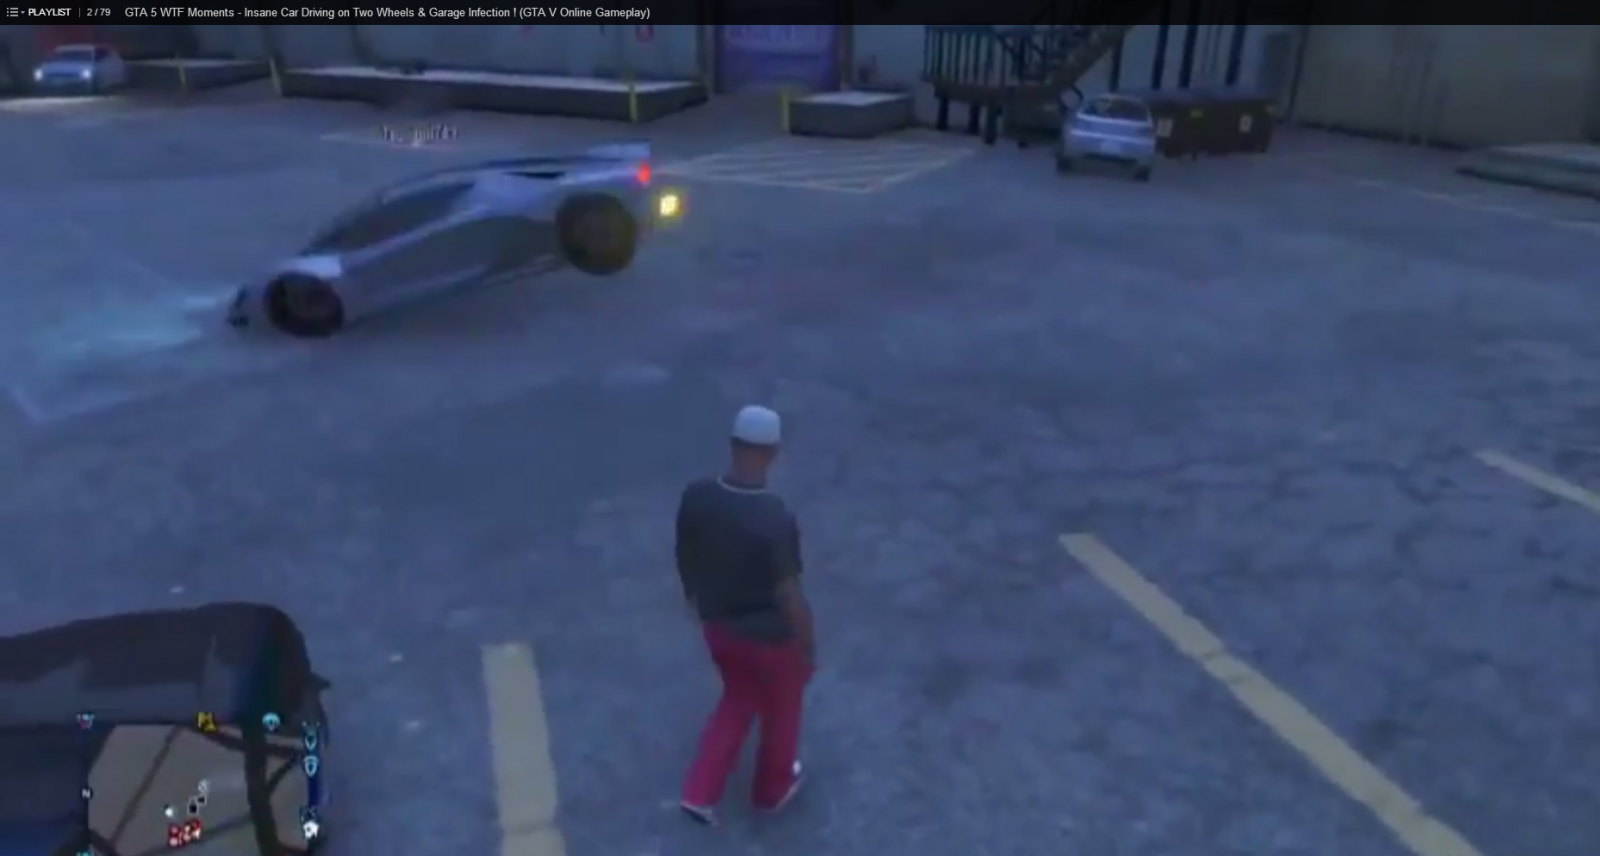 GTA 5 WTF Moments: Insane Car Driving on Two Wheels and Garage Infection